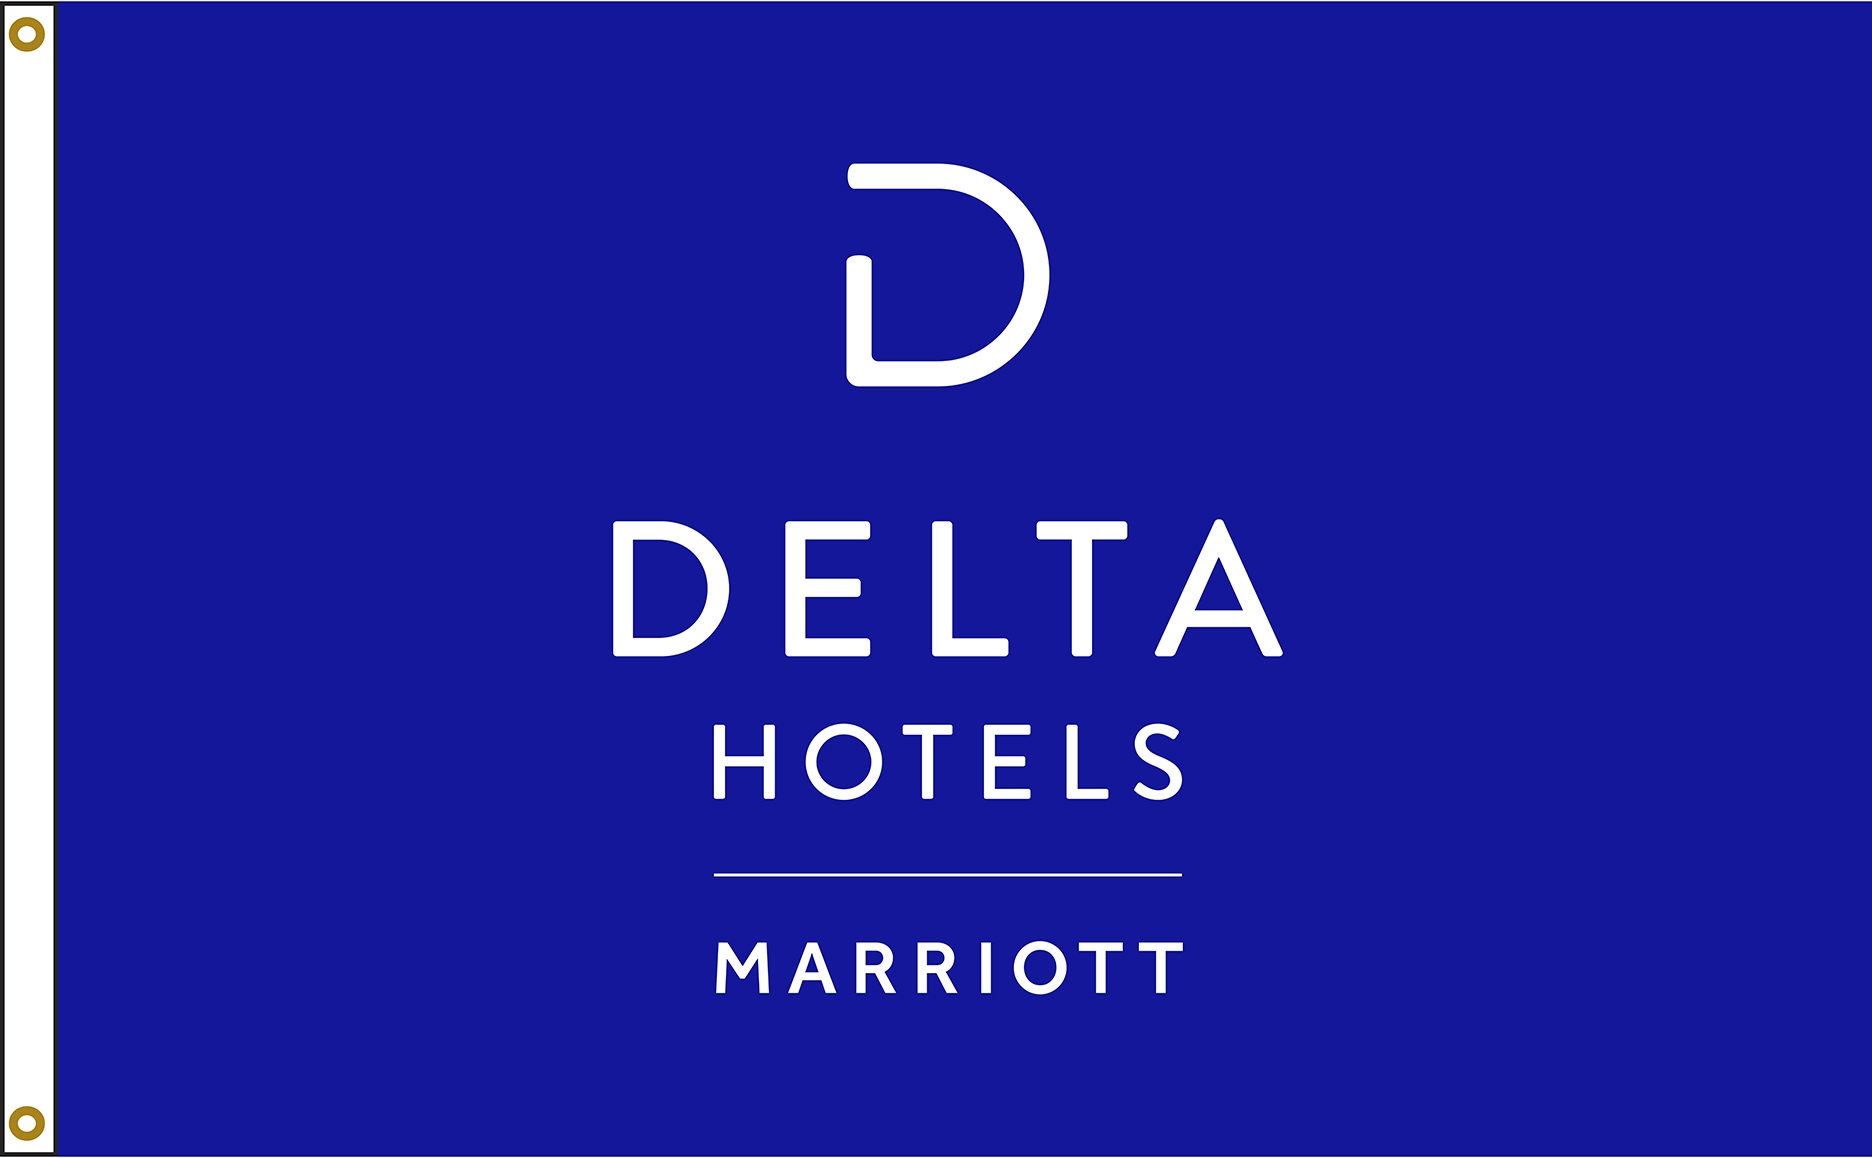 Delta Hotels Double-Face Flag